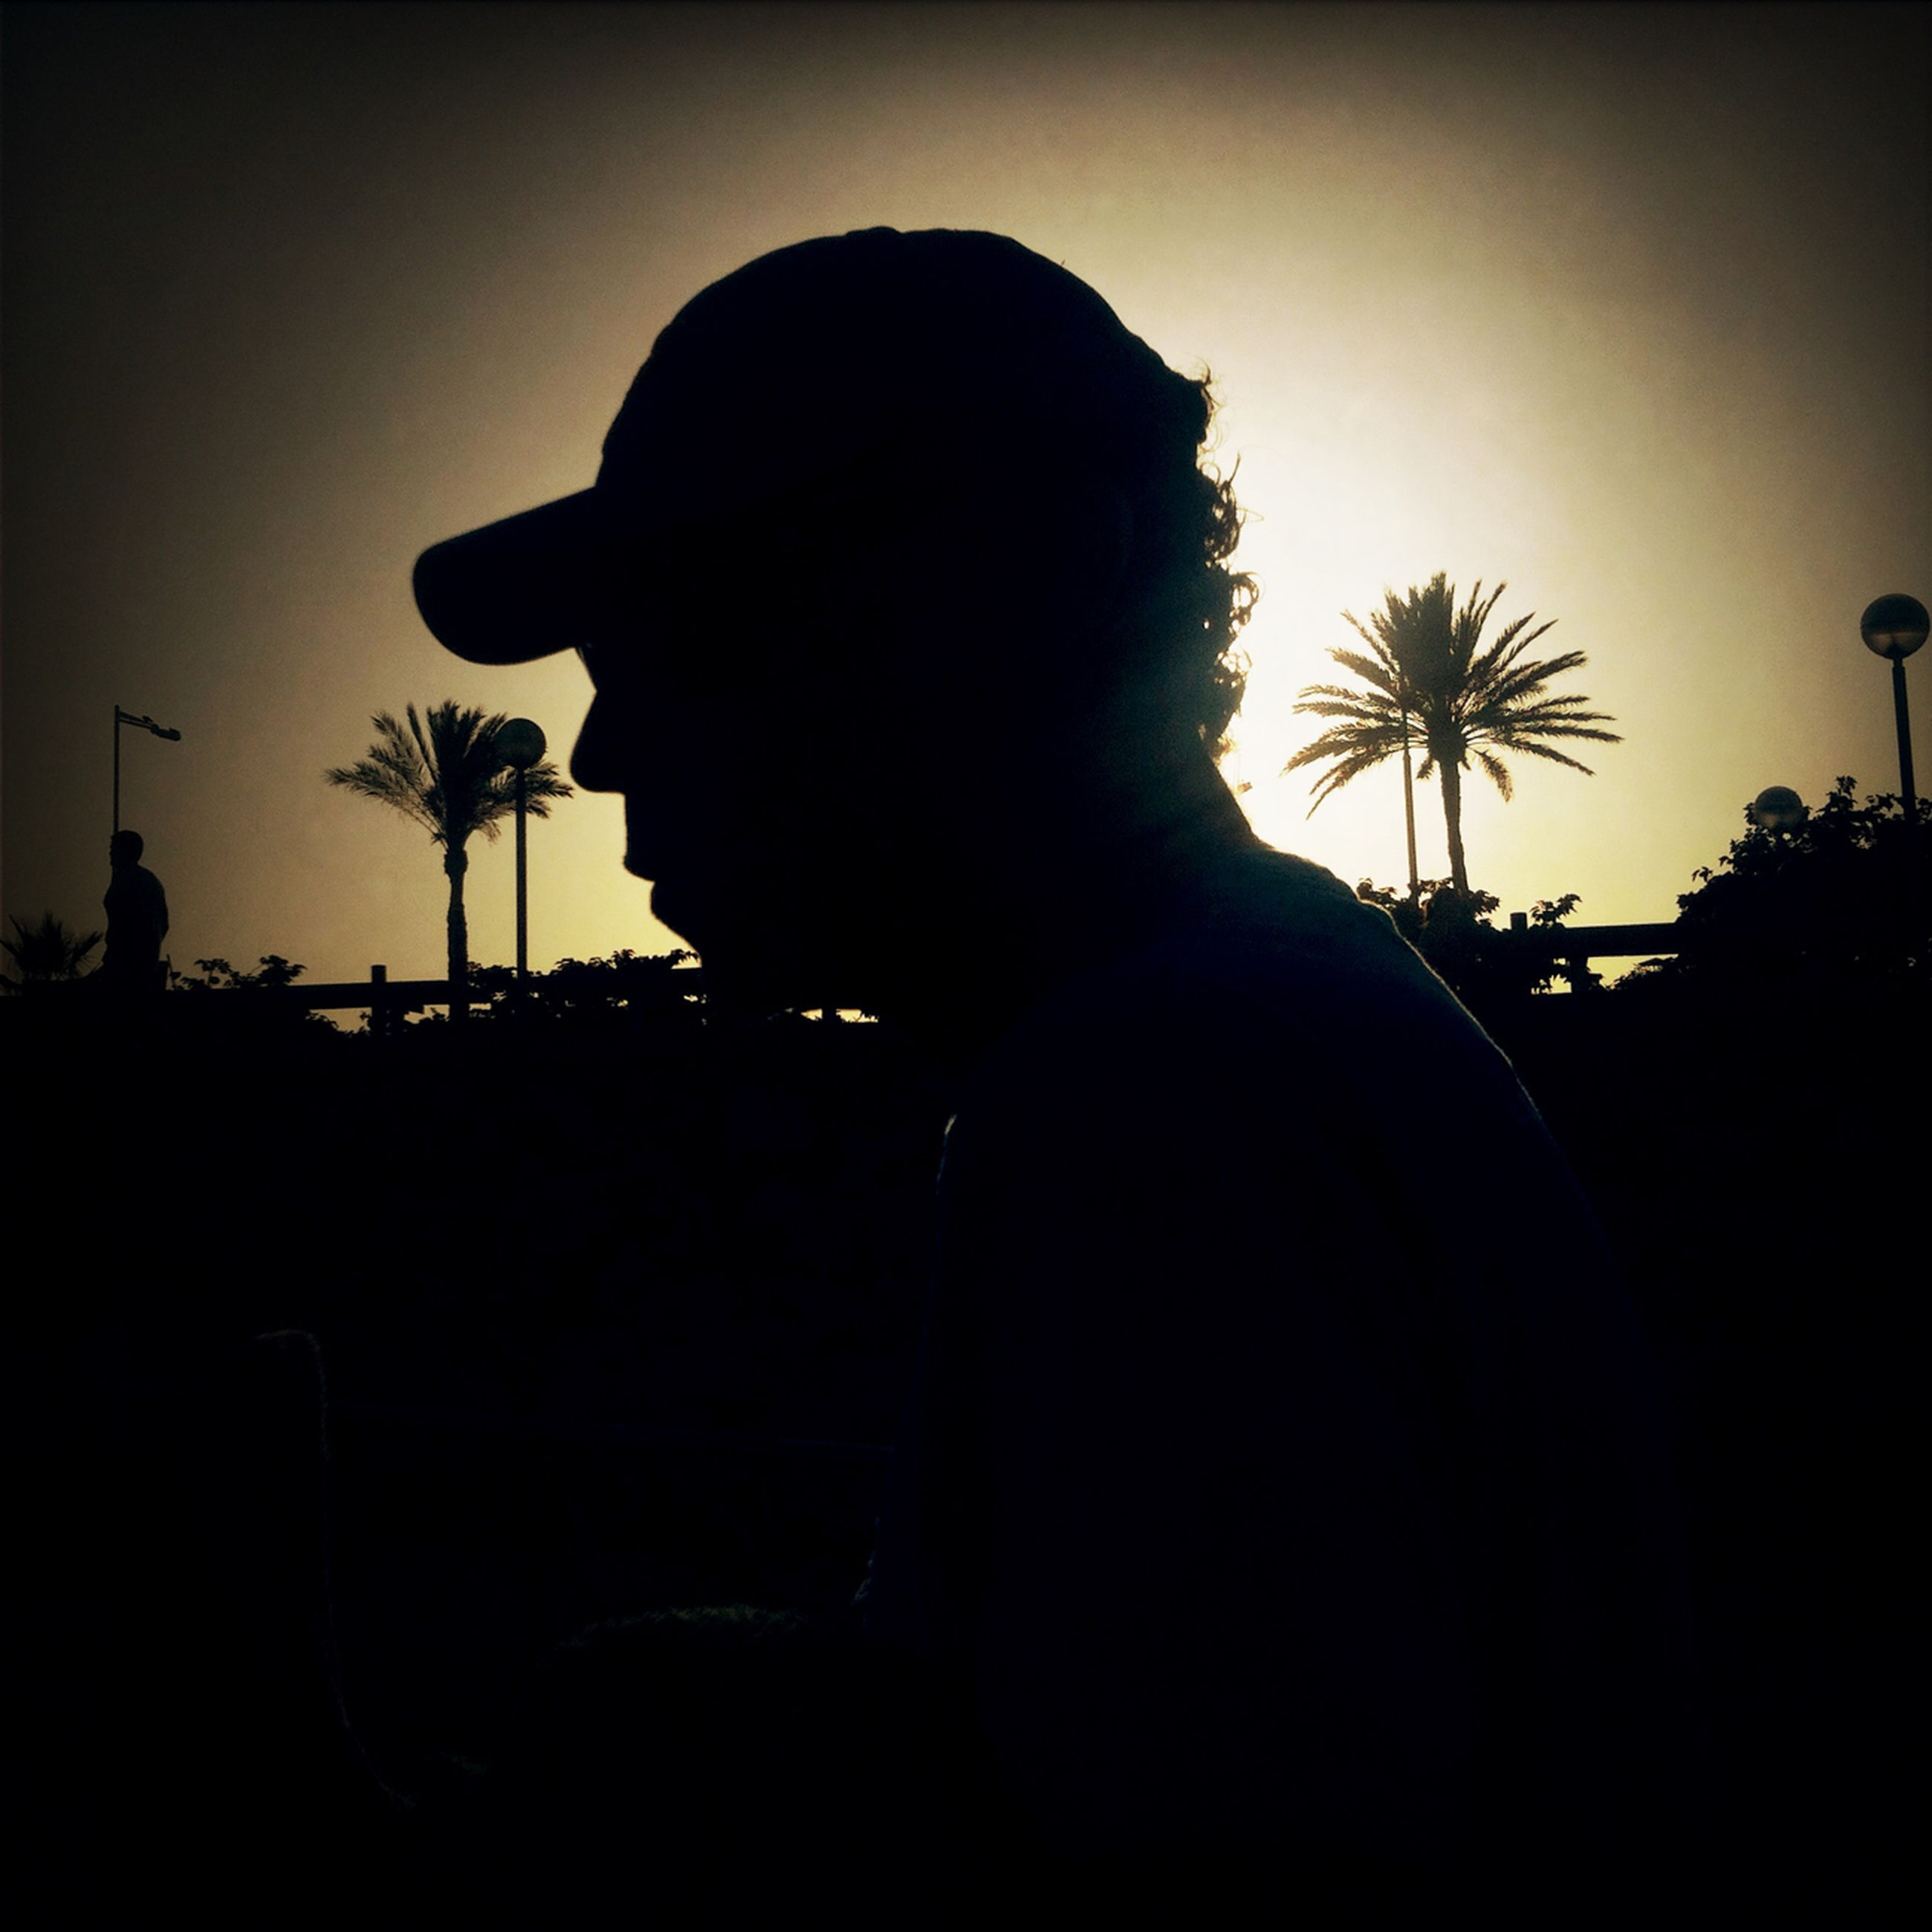 silhouette, lifestyles, leisure activity, sky, standing, men, rear view, dark, three quarter length, sunset, waist up, night, side view, copy space, person, photographing, clear sky, headshot